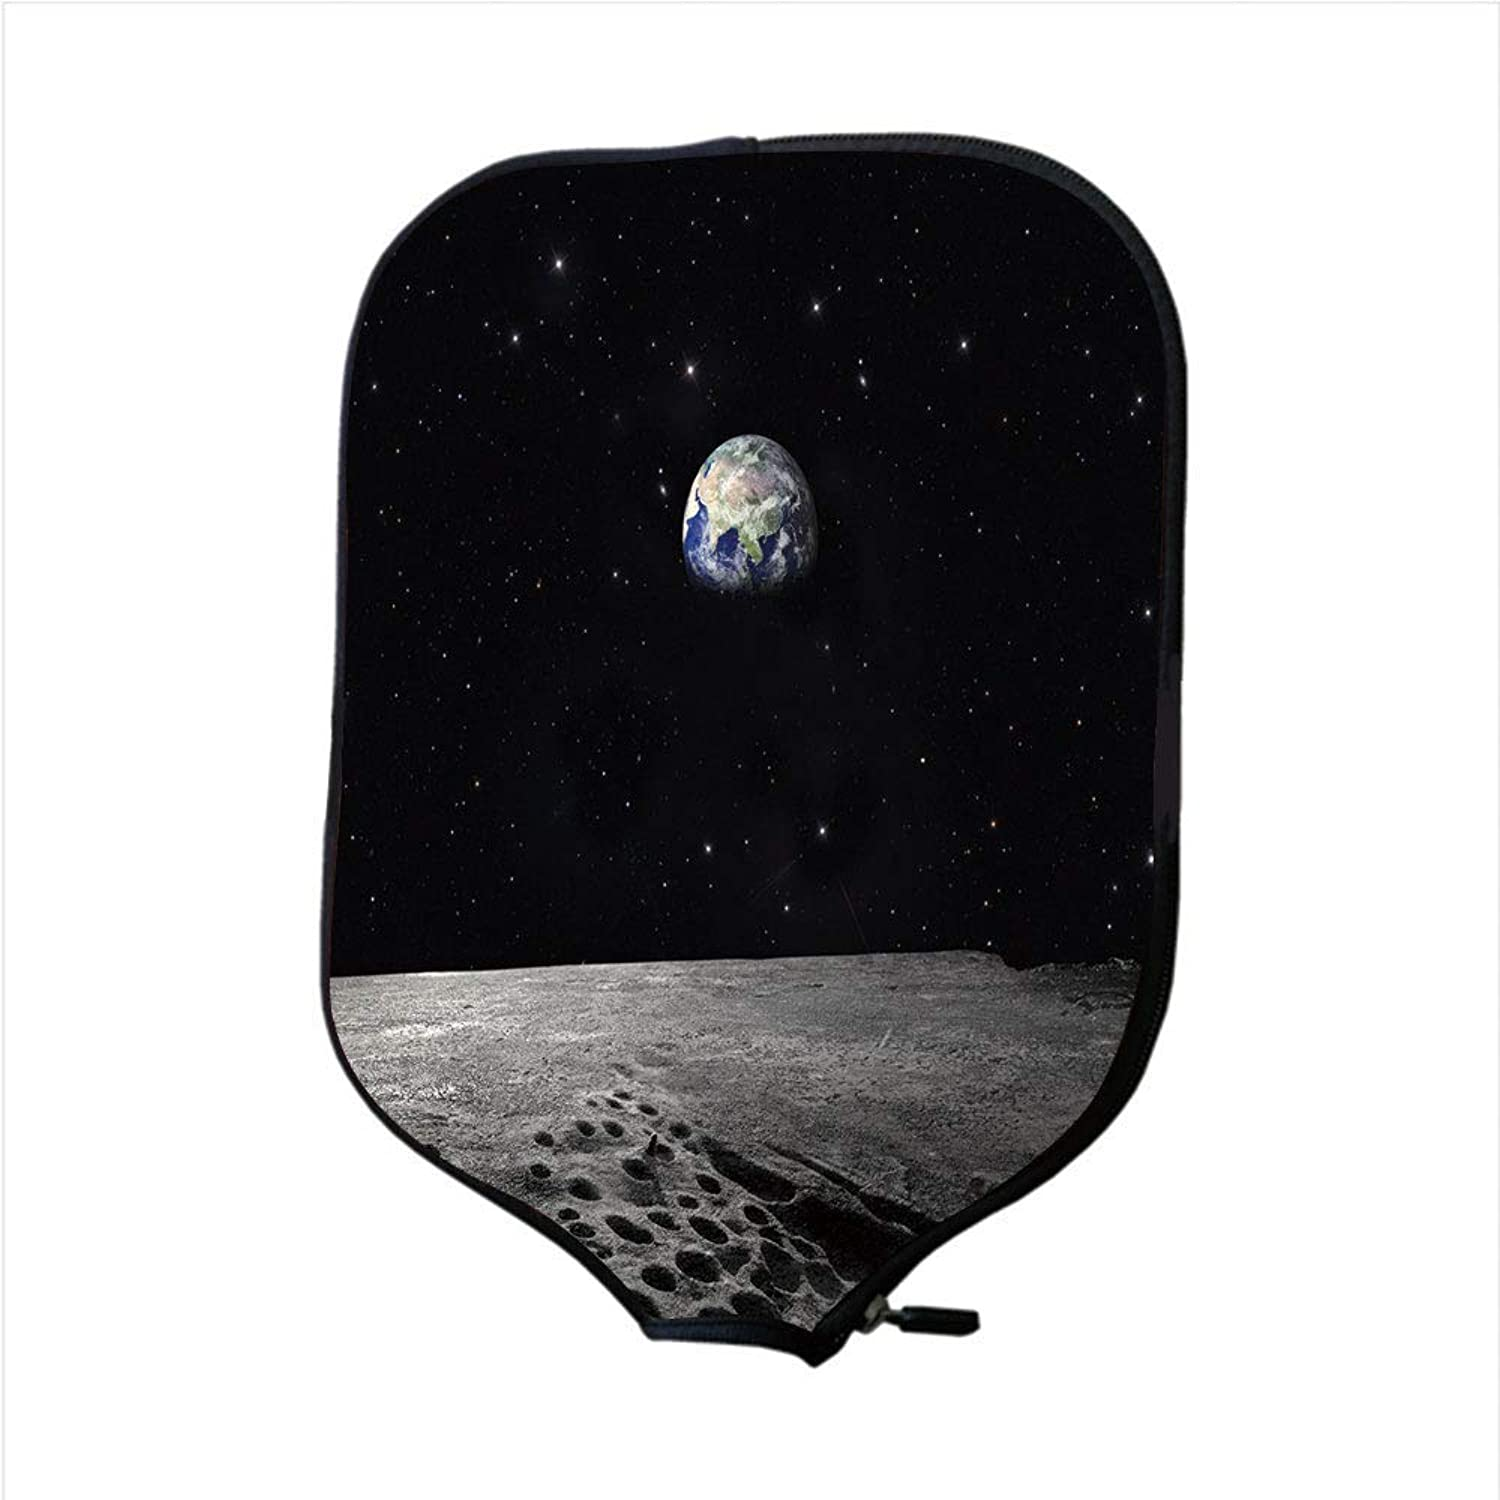 Fine Neoprene Pickleball Paddle Racket Cover Case,Earth,Planet Earth As Seen from The Moon Outer Space Milky Way Quiet Night Sky Galaxy Decorative,Black Grey blueee,Fit for Most Rackets